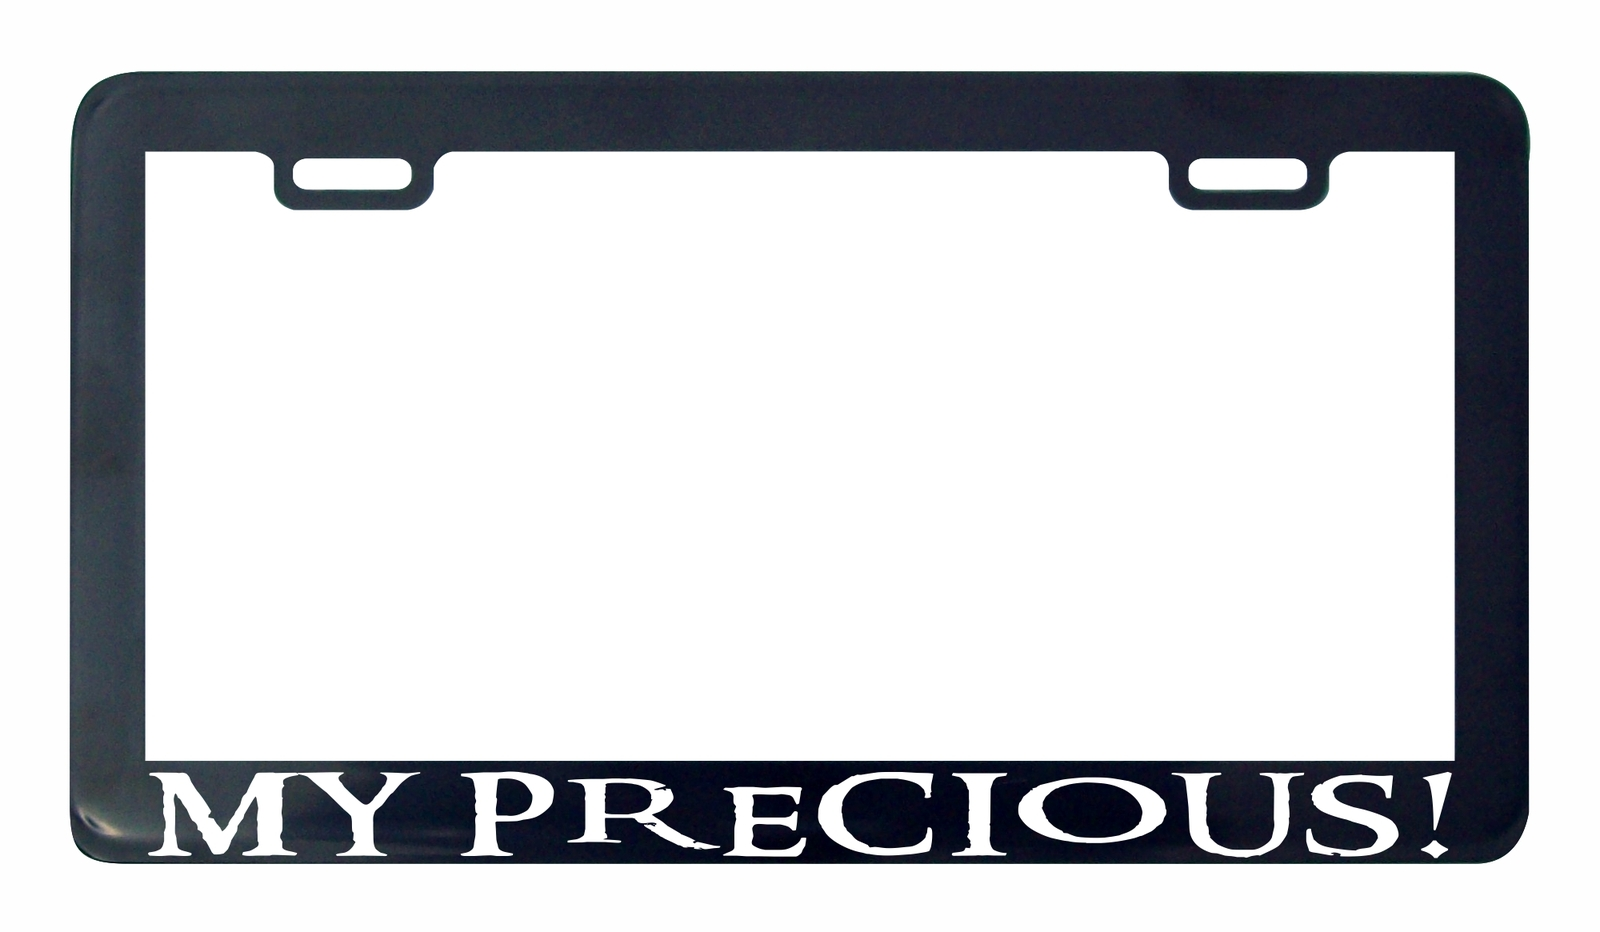 Primary image for My precious! lord of Rings license plate frame holder tag